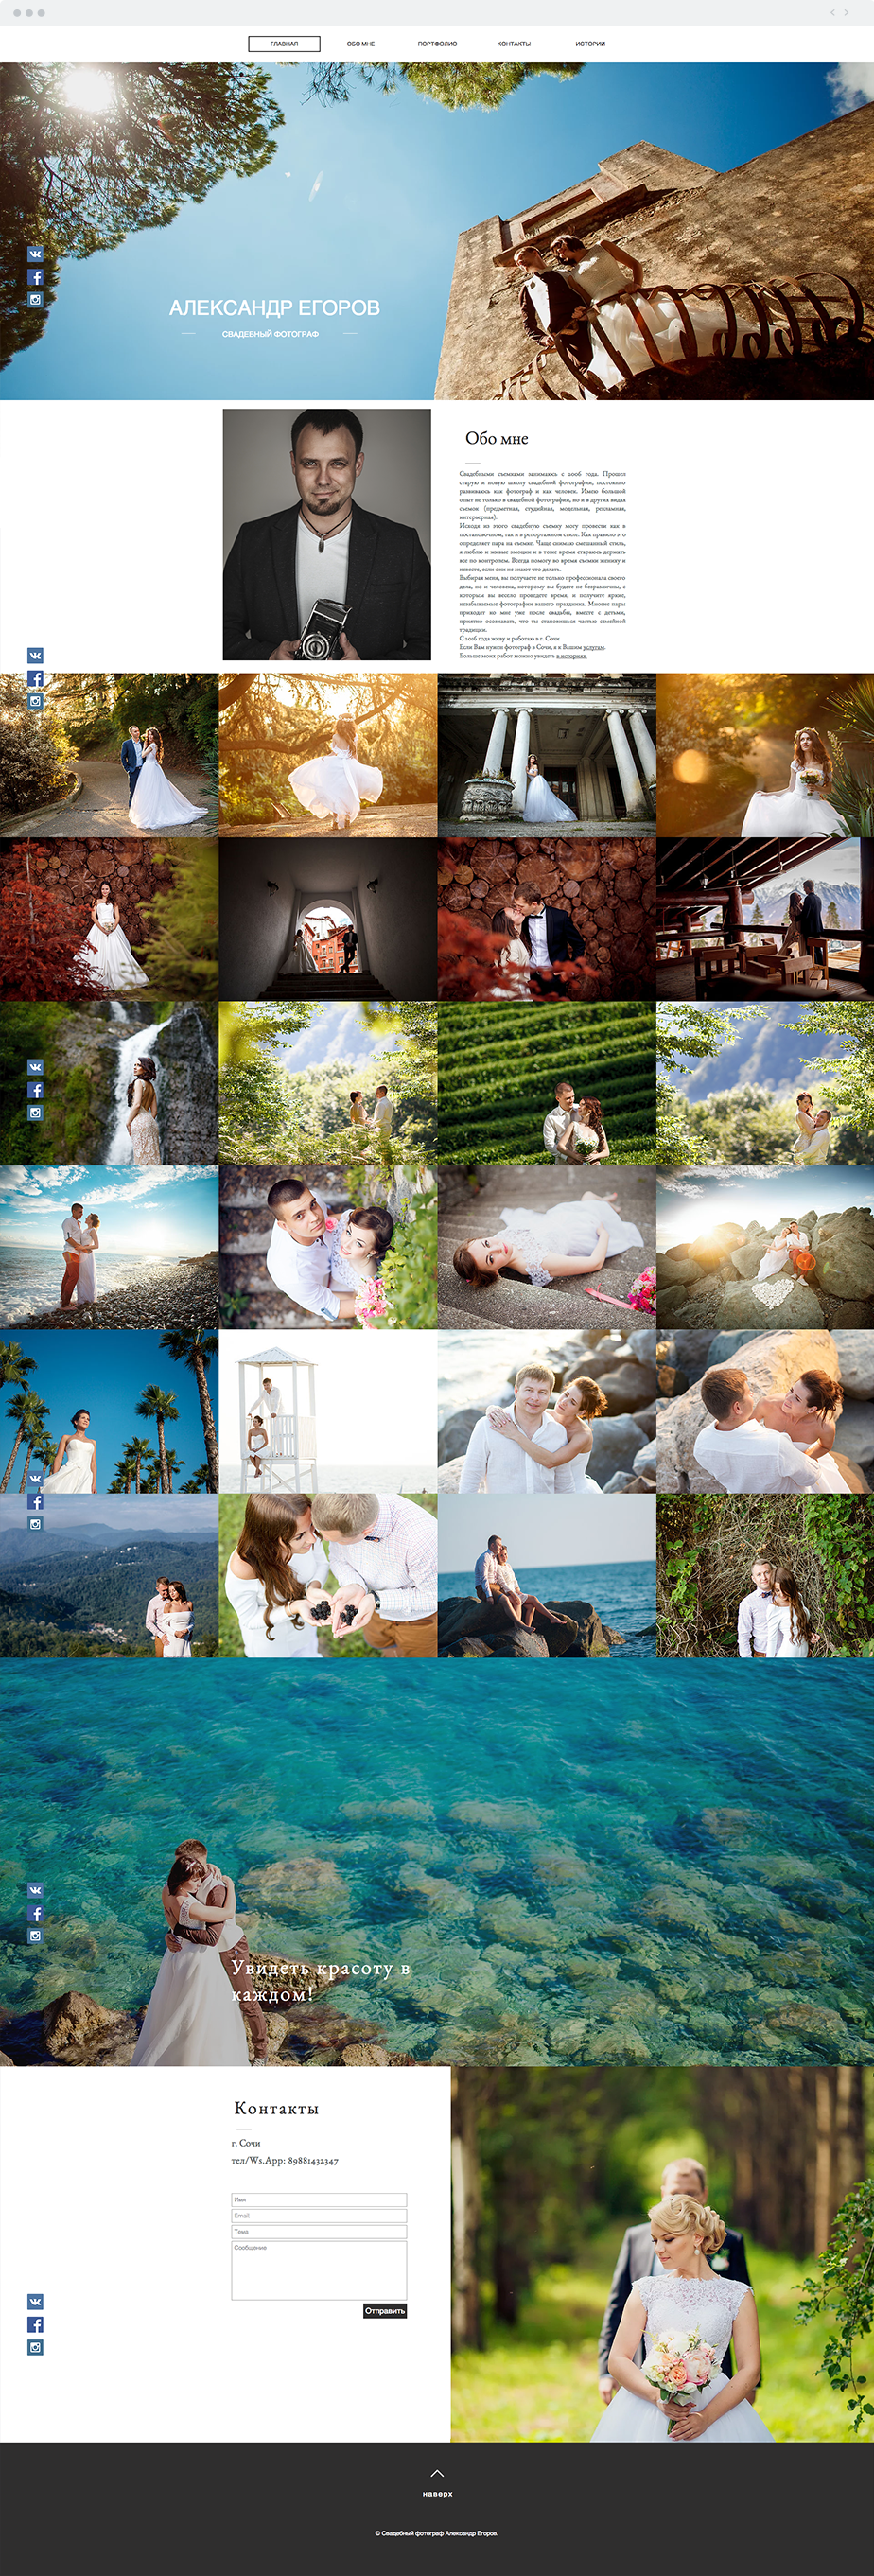 Stunning Wix online portfolio by wedding photographer Aleksandr Egorov